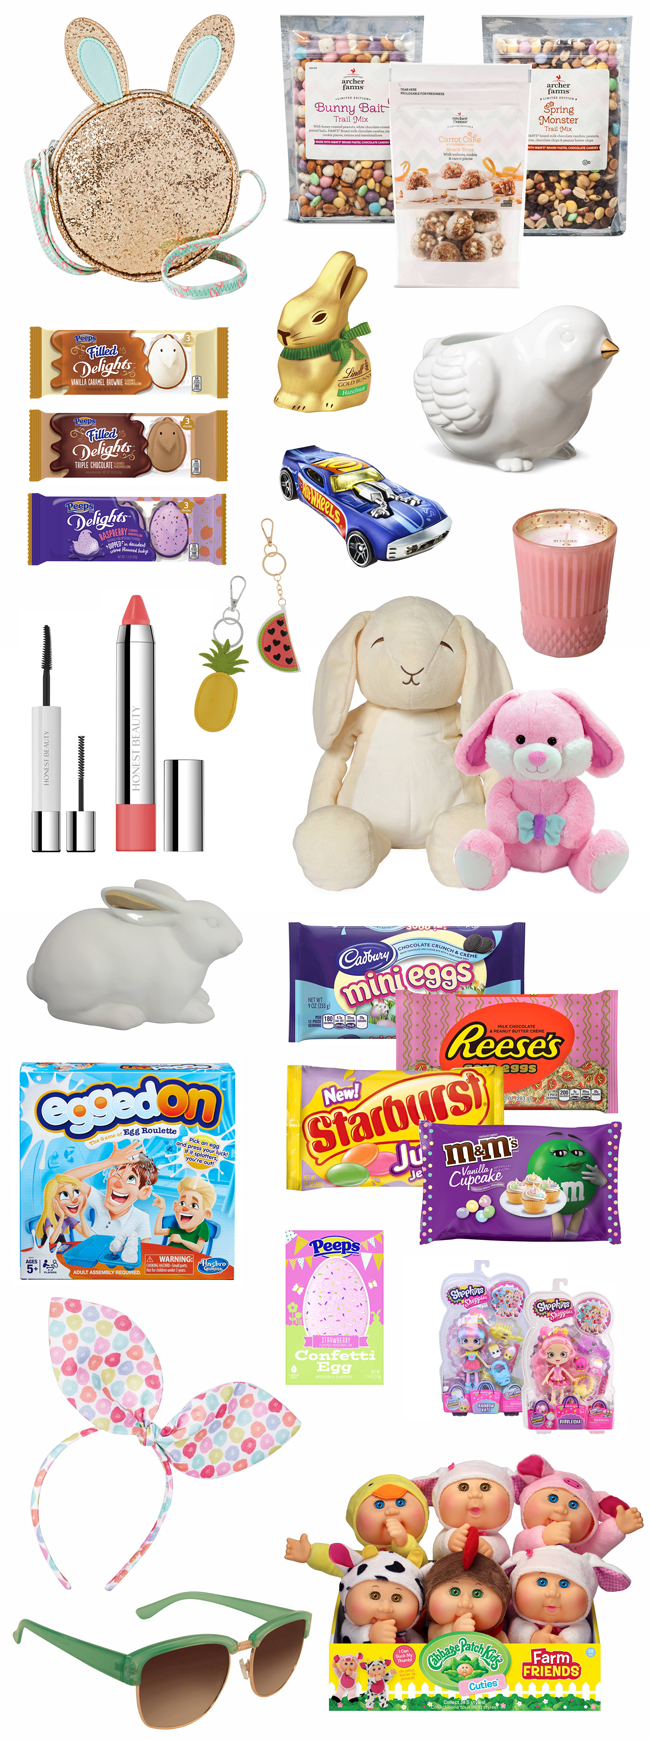 Tons of fun Easter basket fillers, from glittery bunny purse to snack mixes, candy, make-up and more.